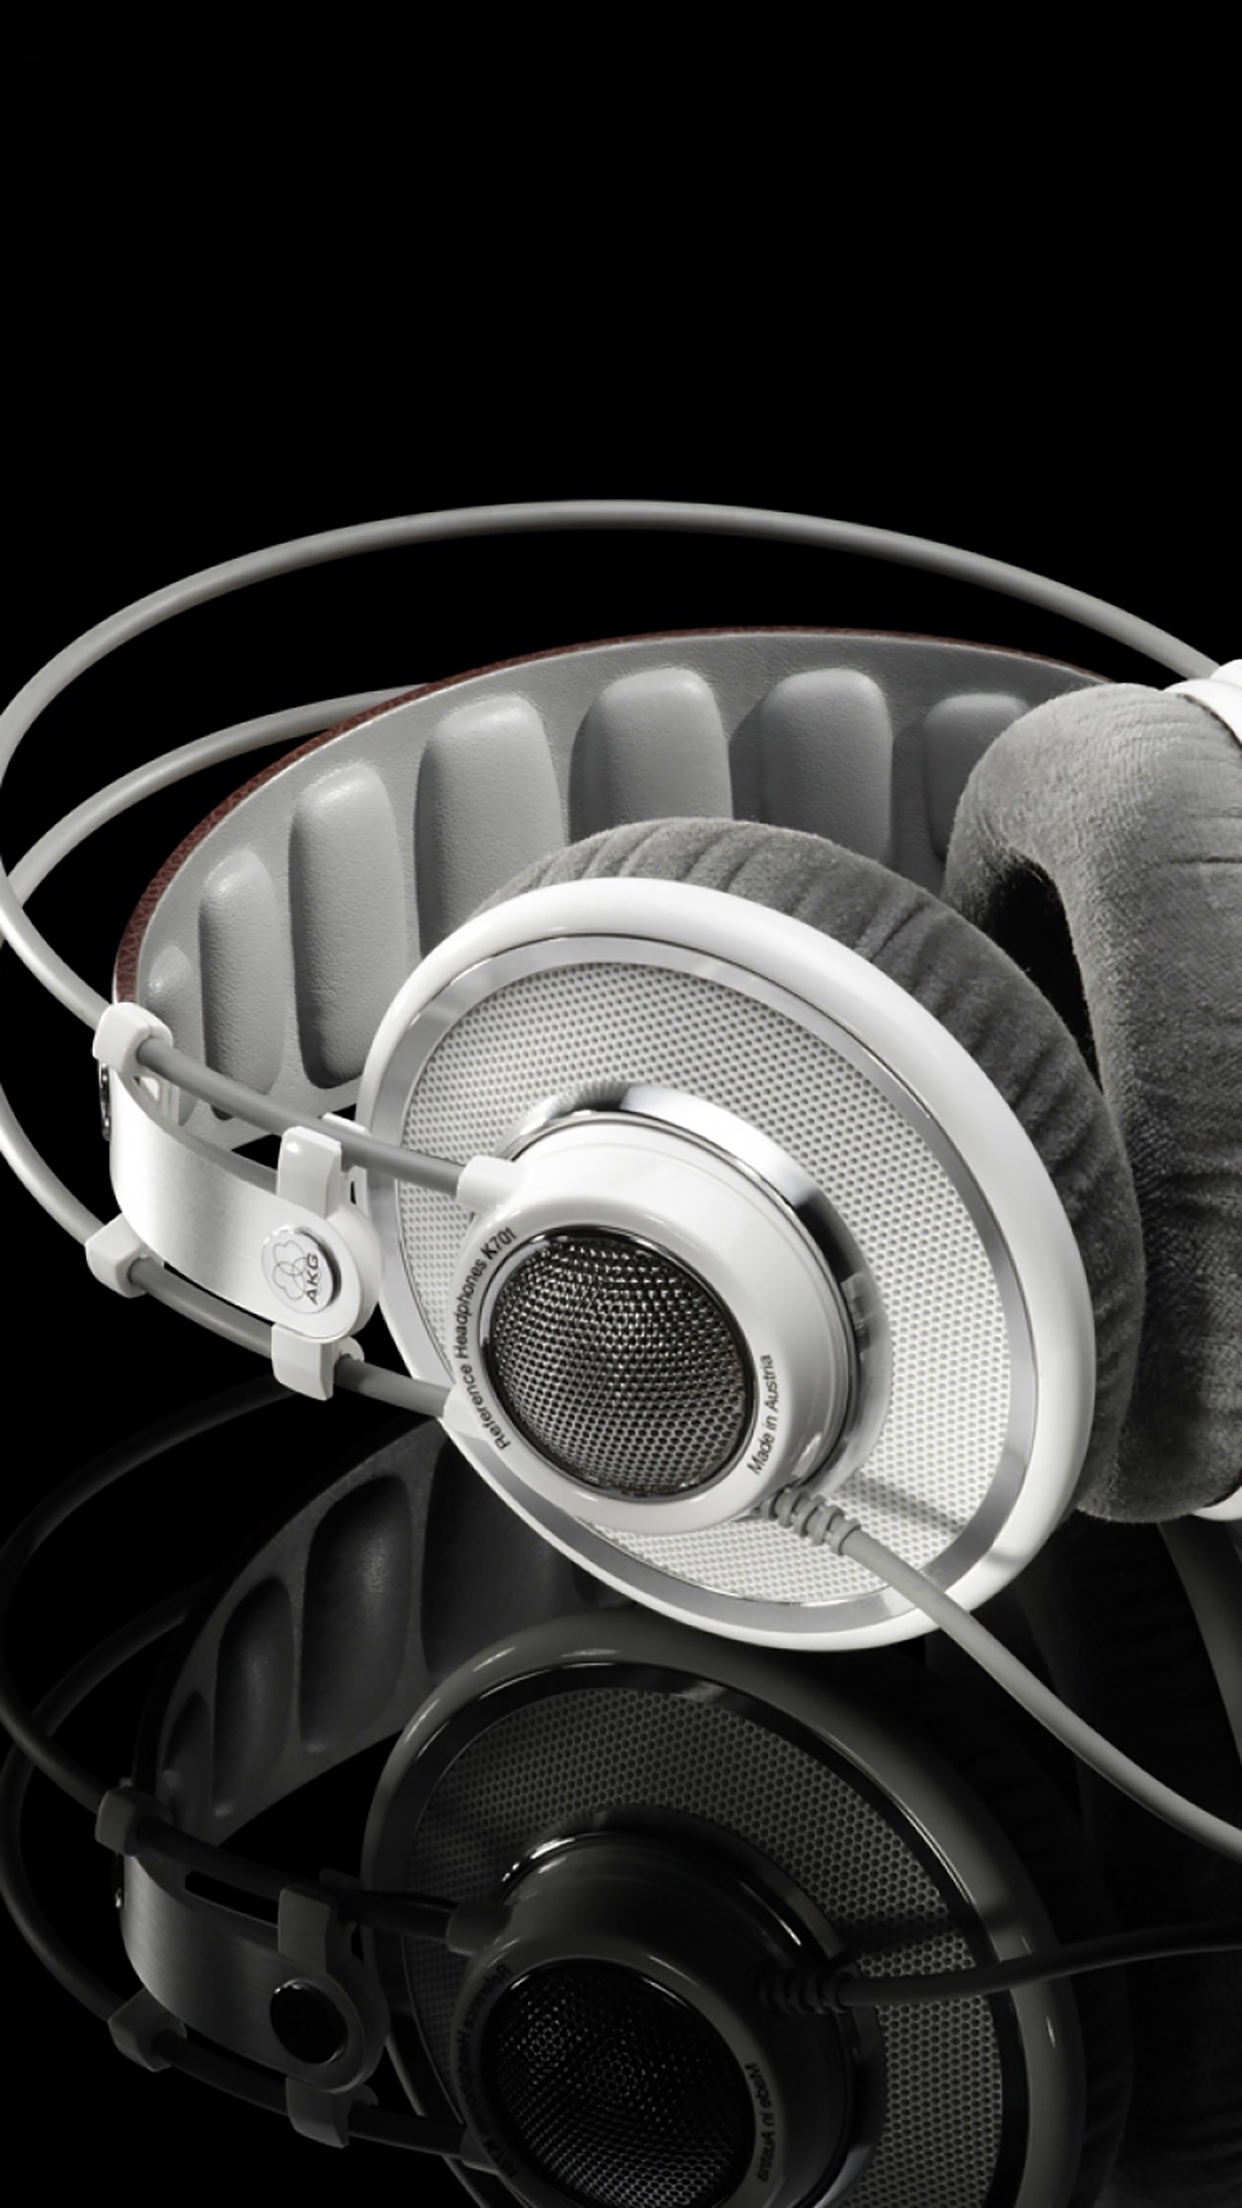 Headphones Black And White 3Wallpapers iPhone Parallax Headphones : Black And White